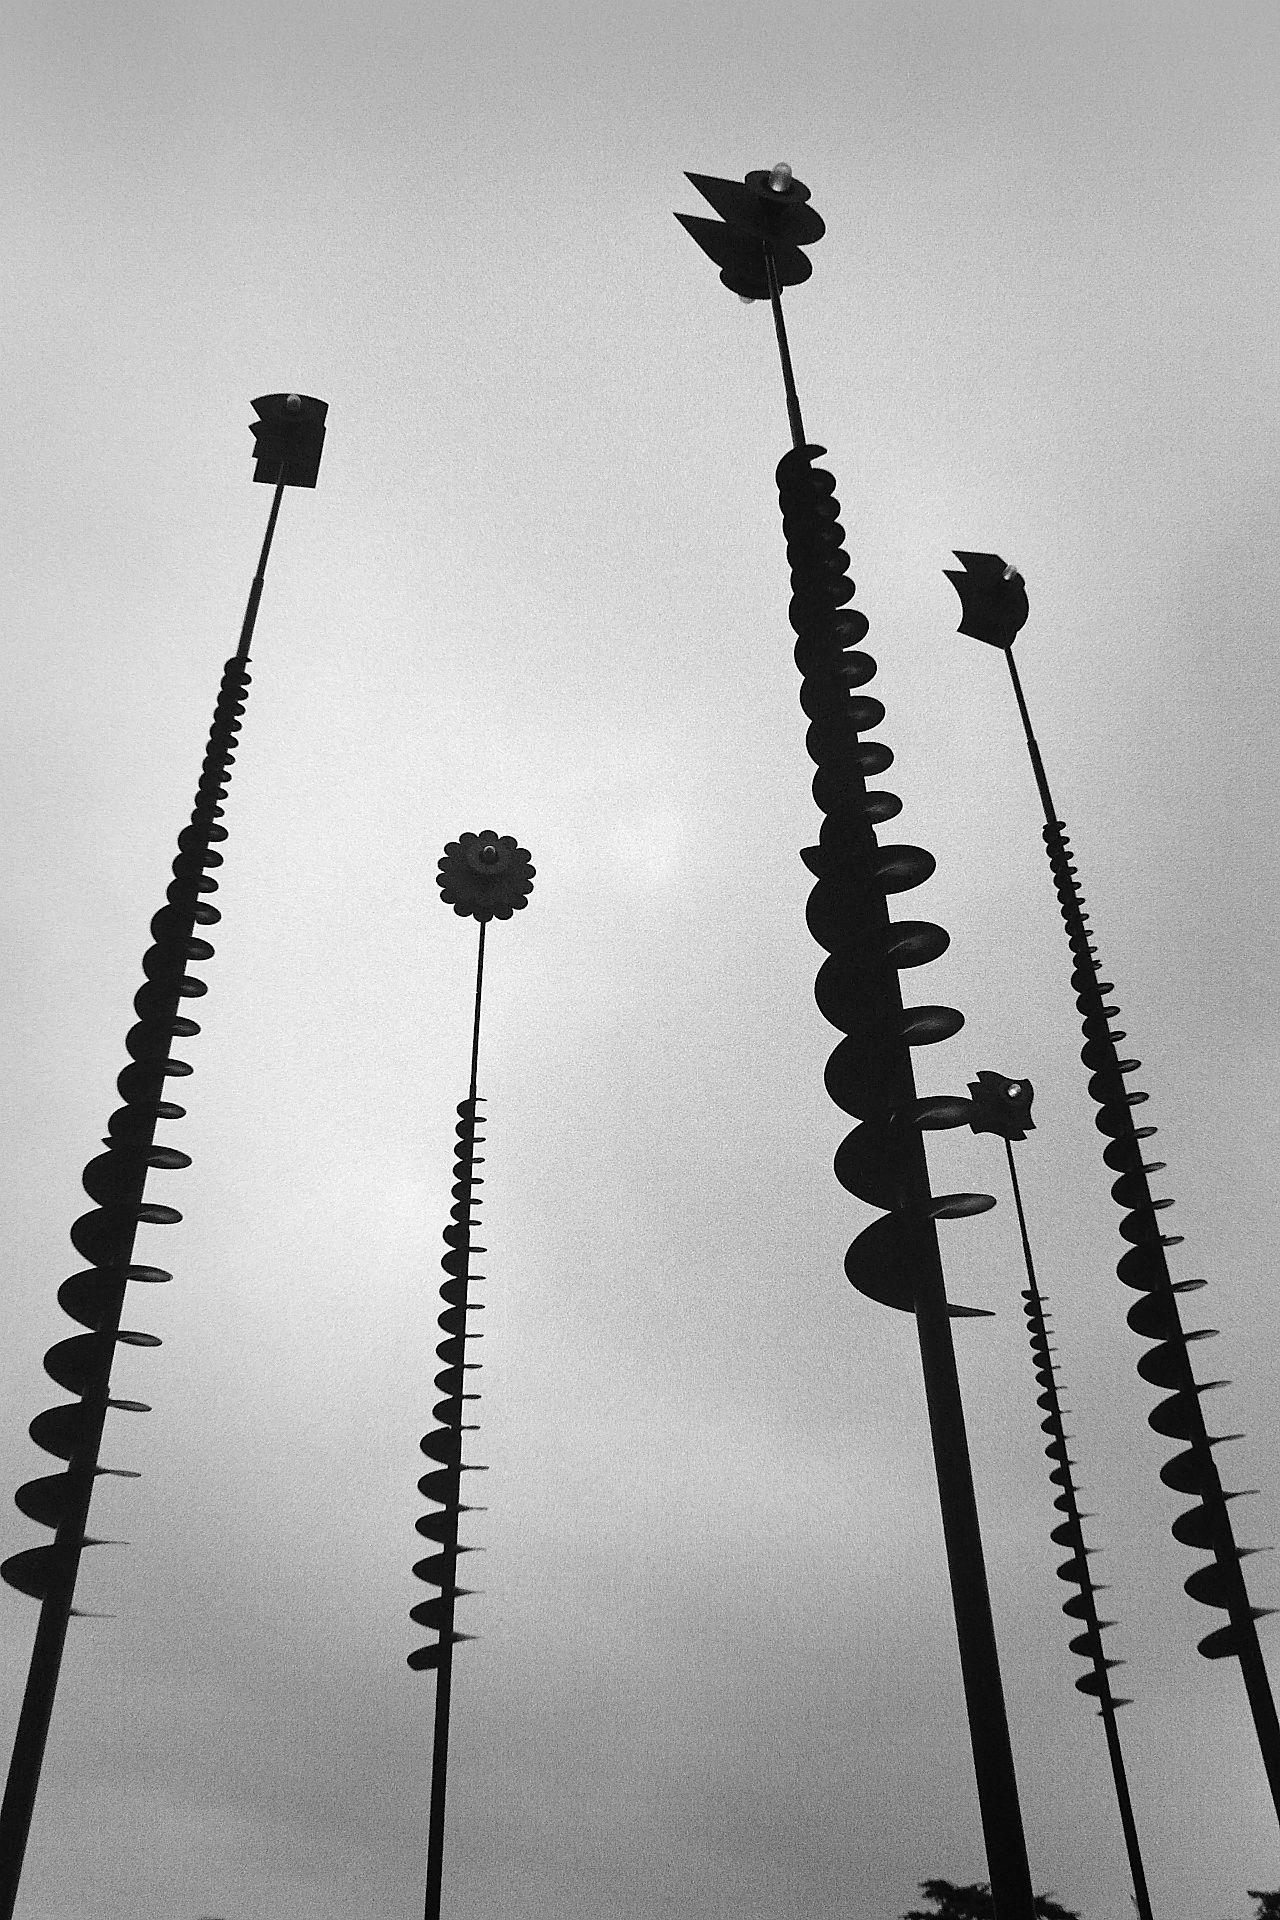 Lamps on top of tall poles with threaded screw spiral attachments